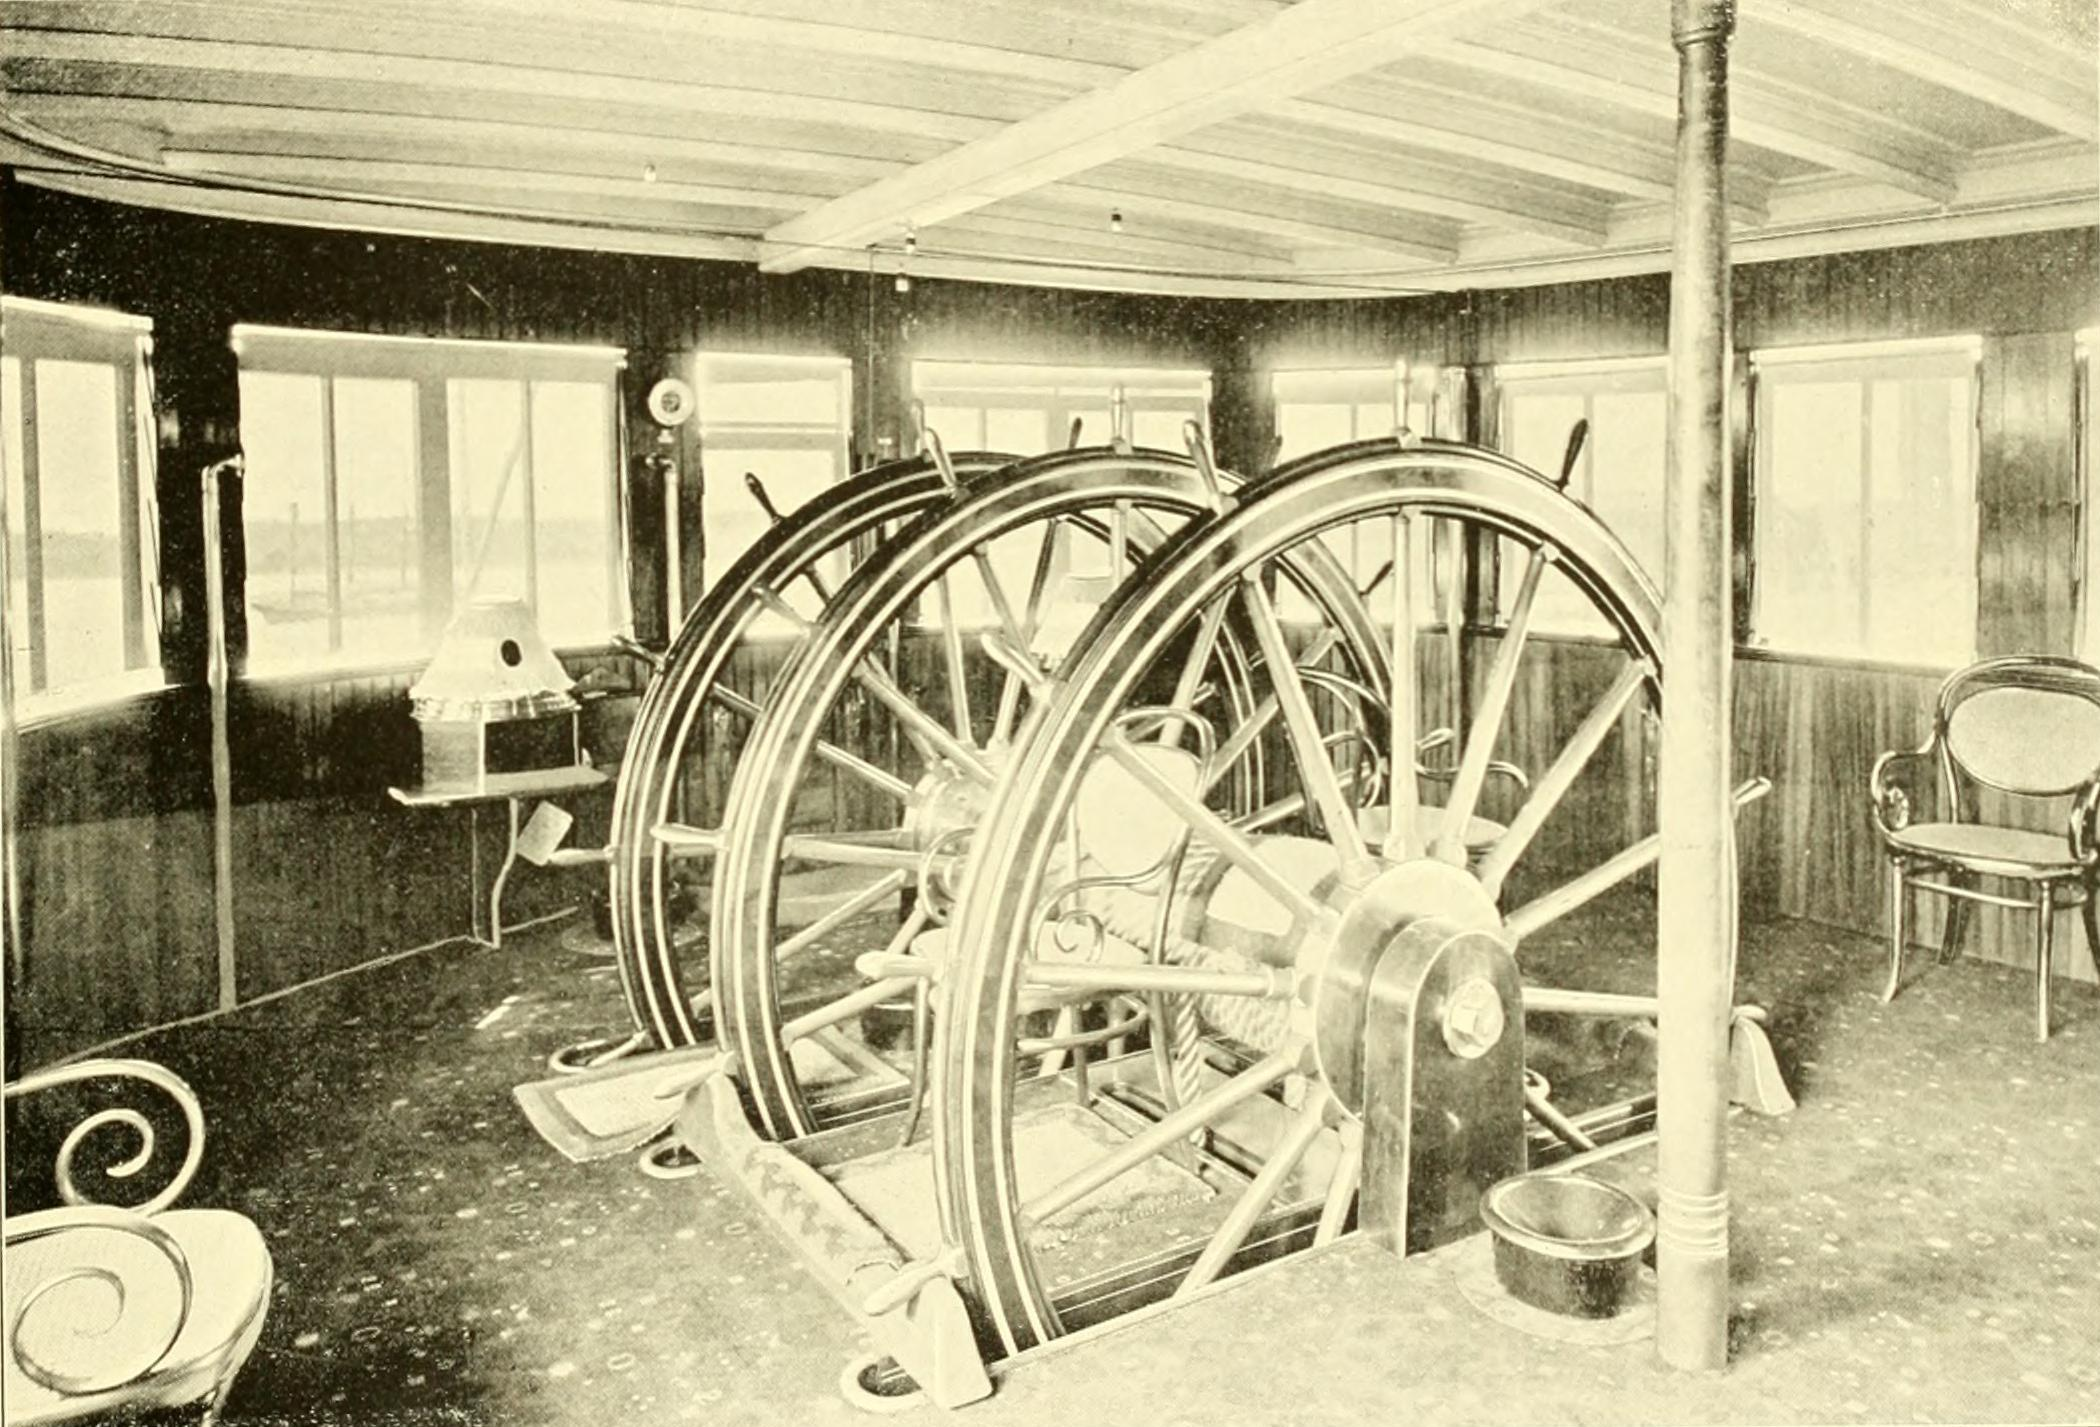 PILOT HOUSE OF A STEAMSHIP - 1899